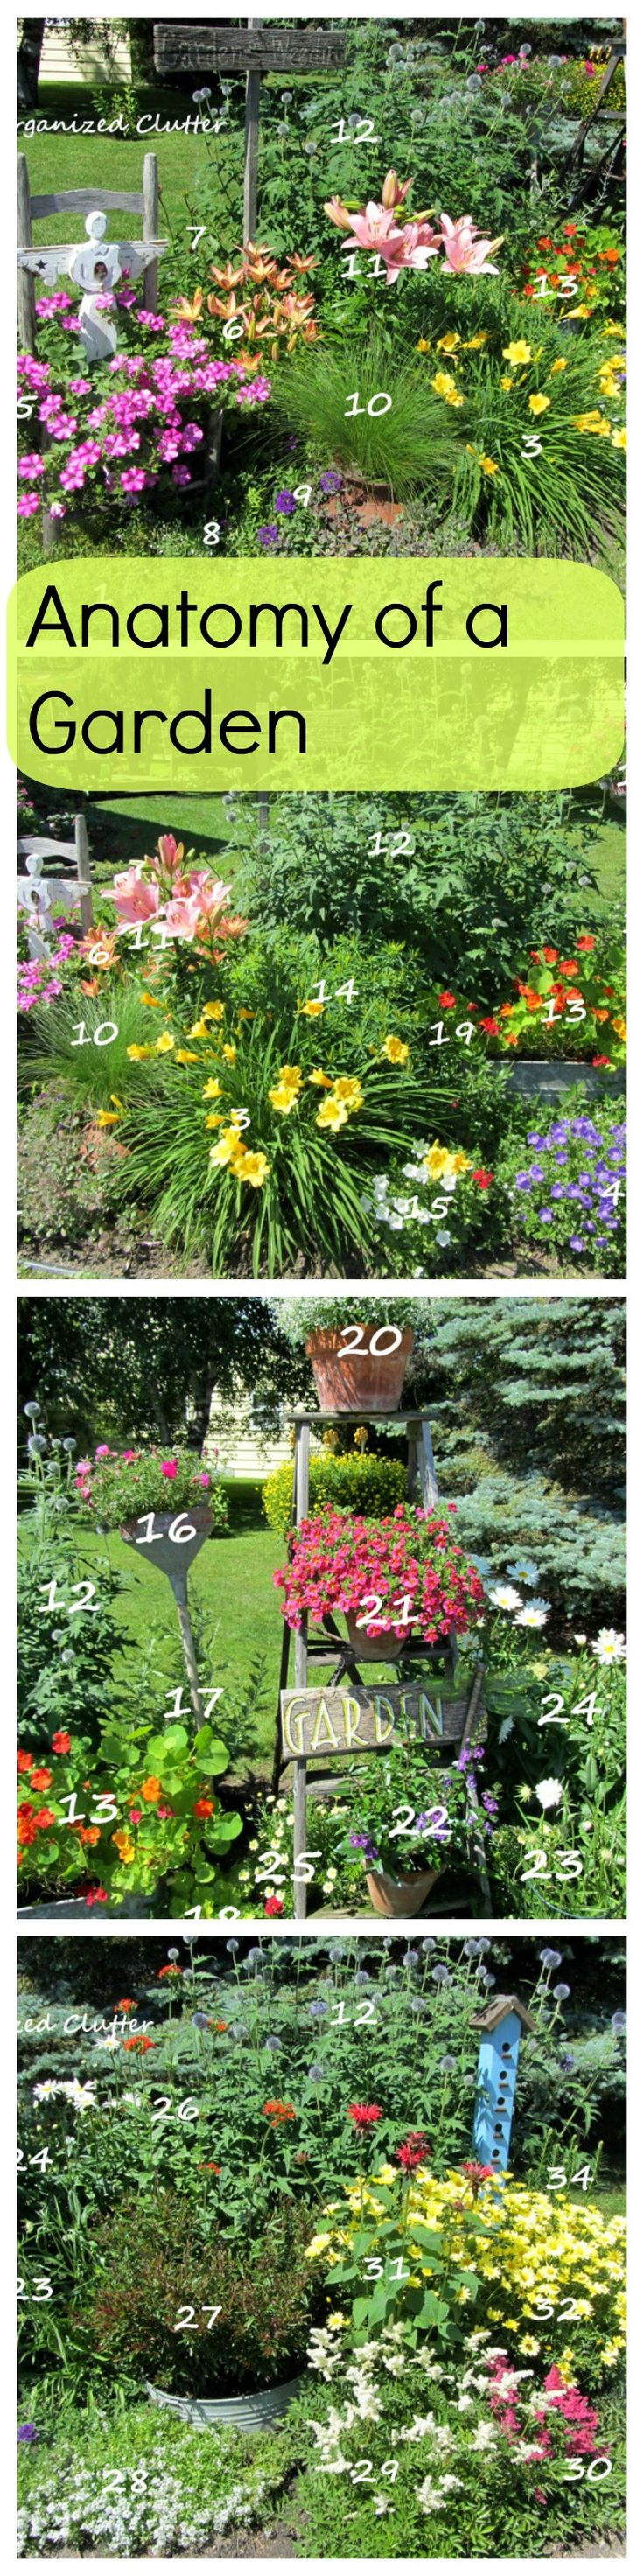 Anatomy of a Cottage Garden. Diagrammed and labeled plant list.